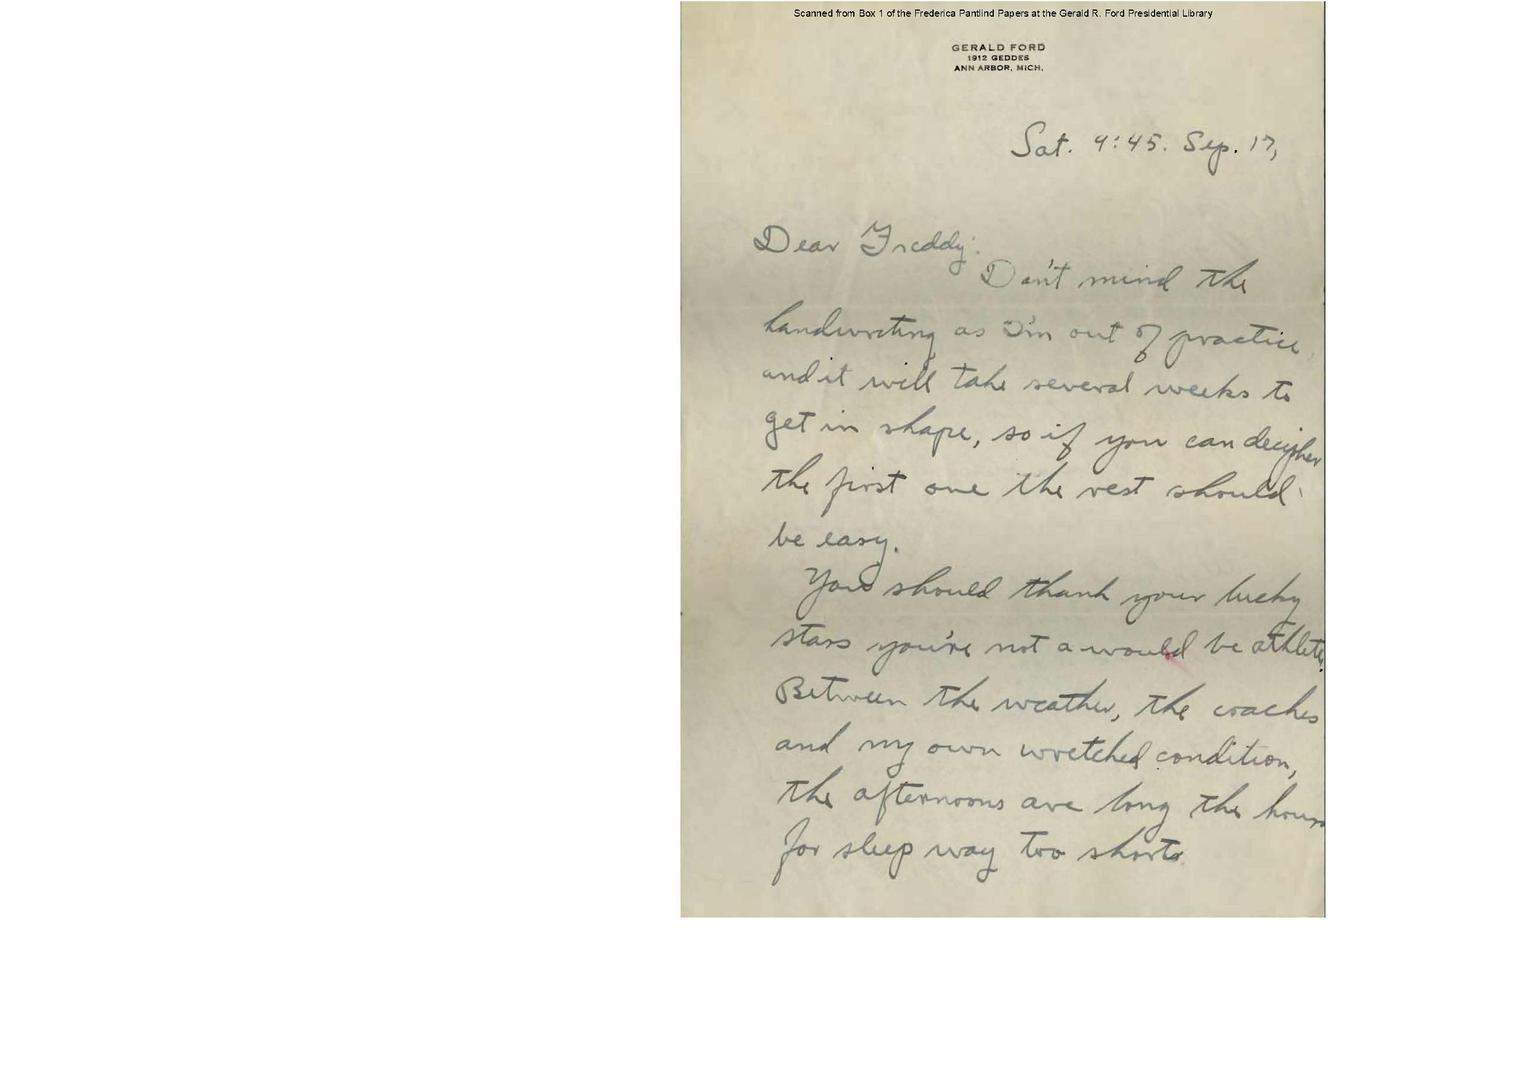 File:Letter to Gerald R  Ford (1933-09-17)(Gerald Ford